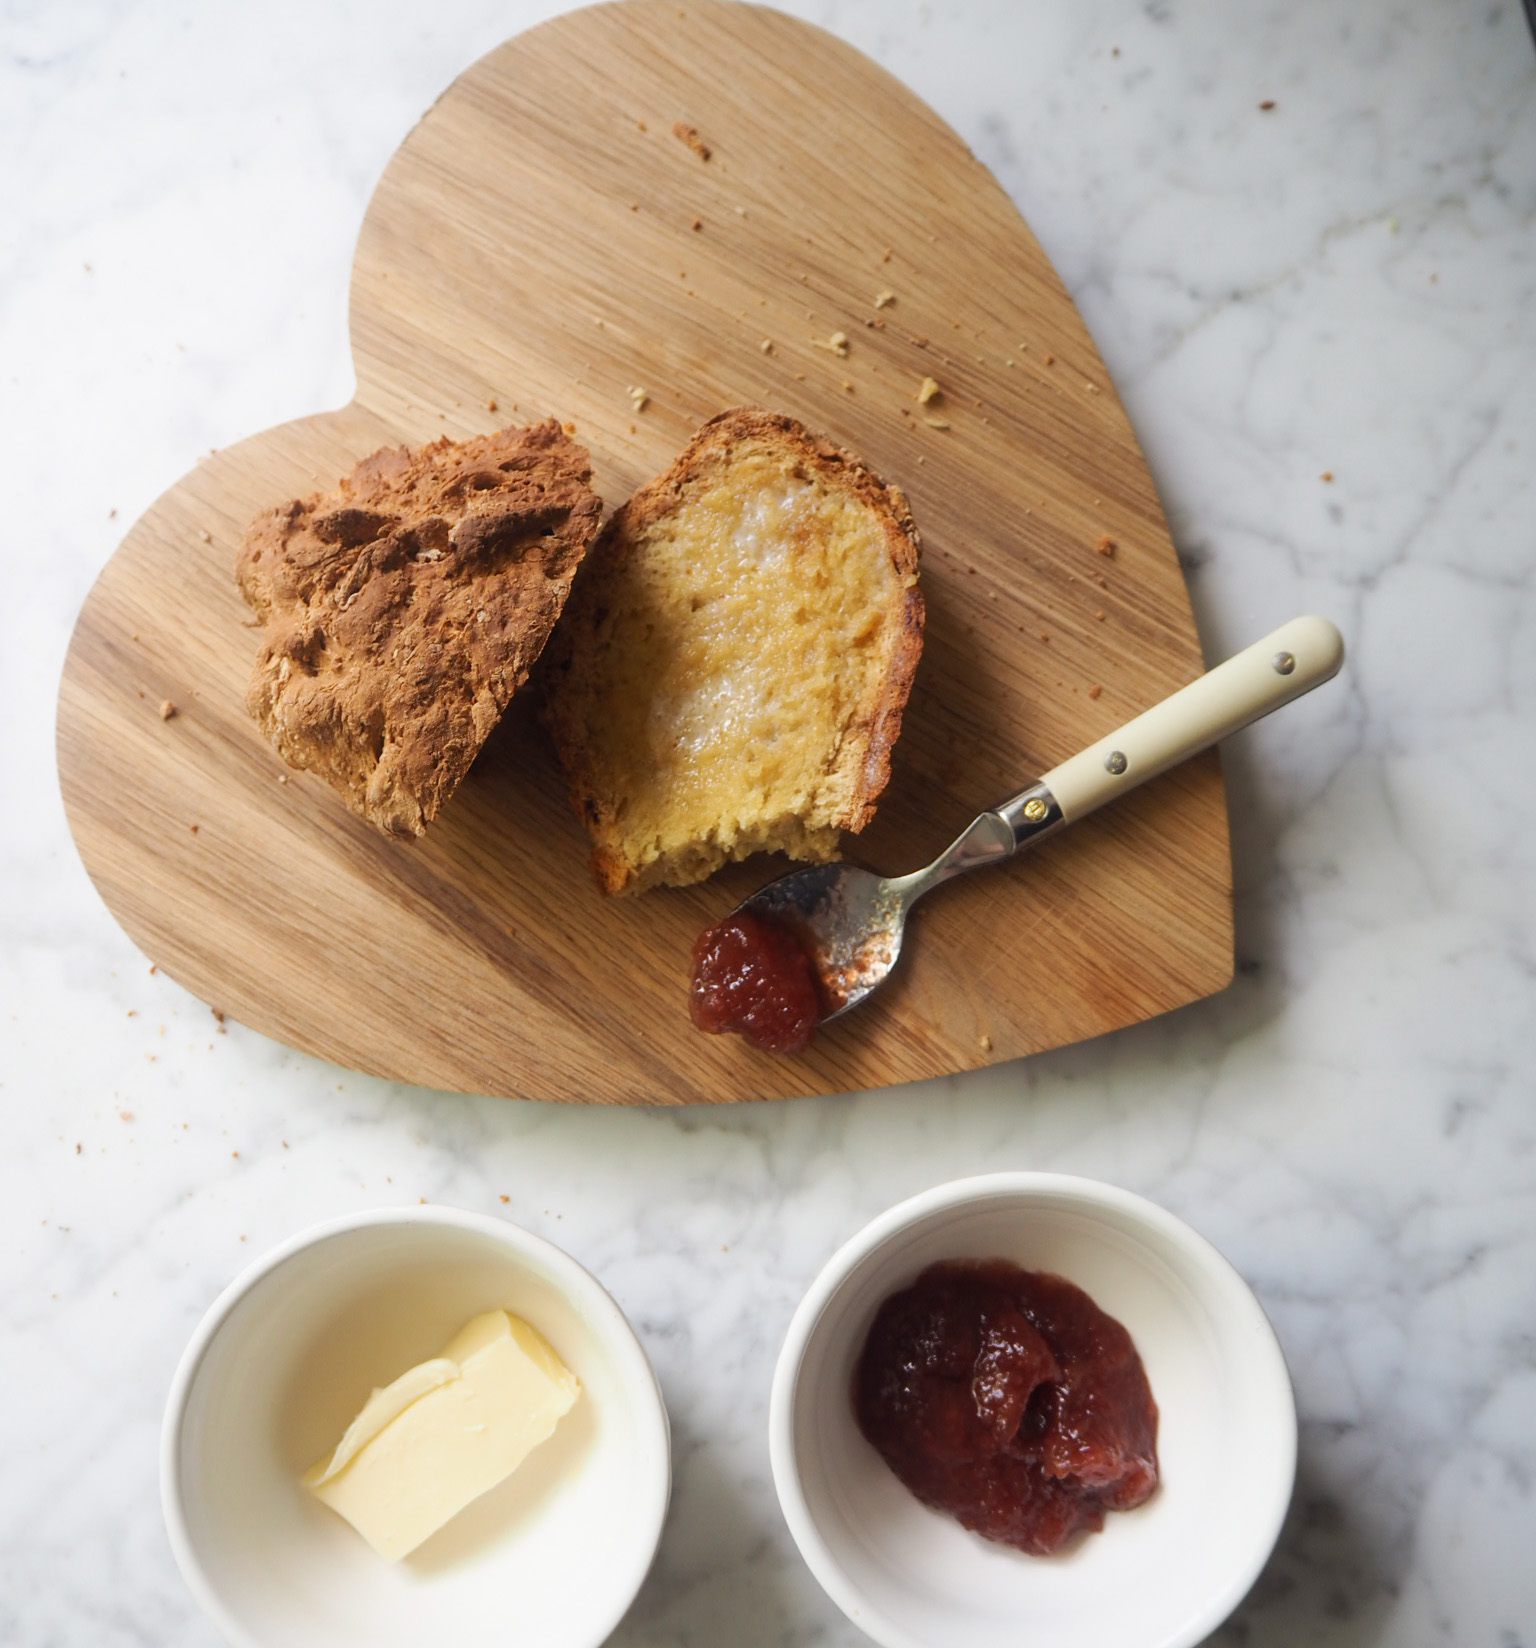 5 ingredient Soda Bread, from the River Cottage